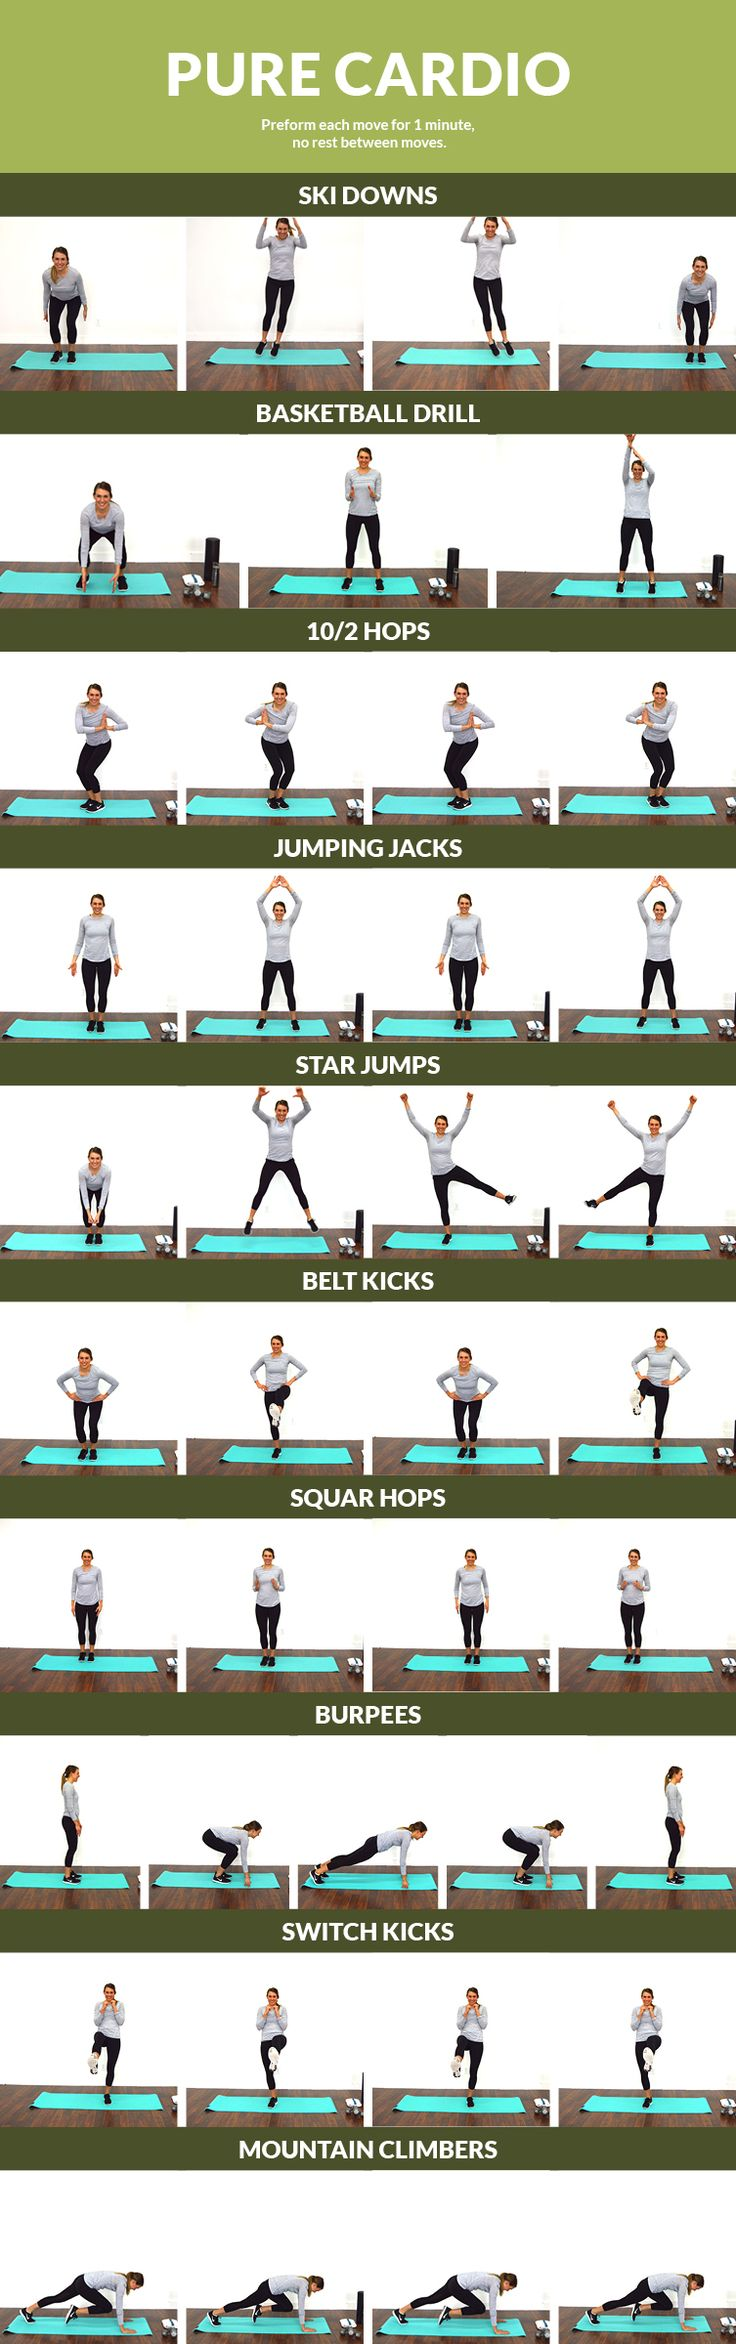 Pure Cardio Workout - Sweat it out with this cardio blast!